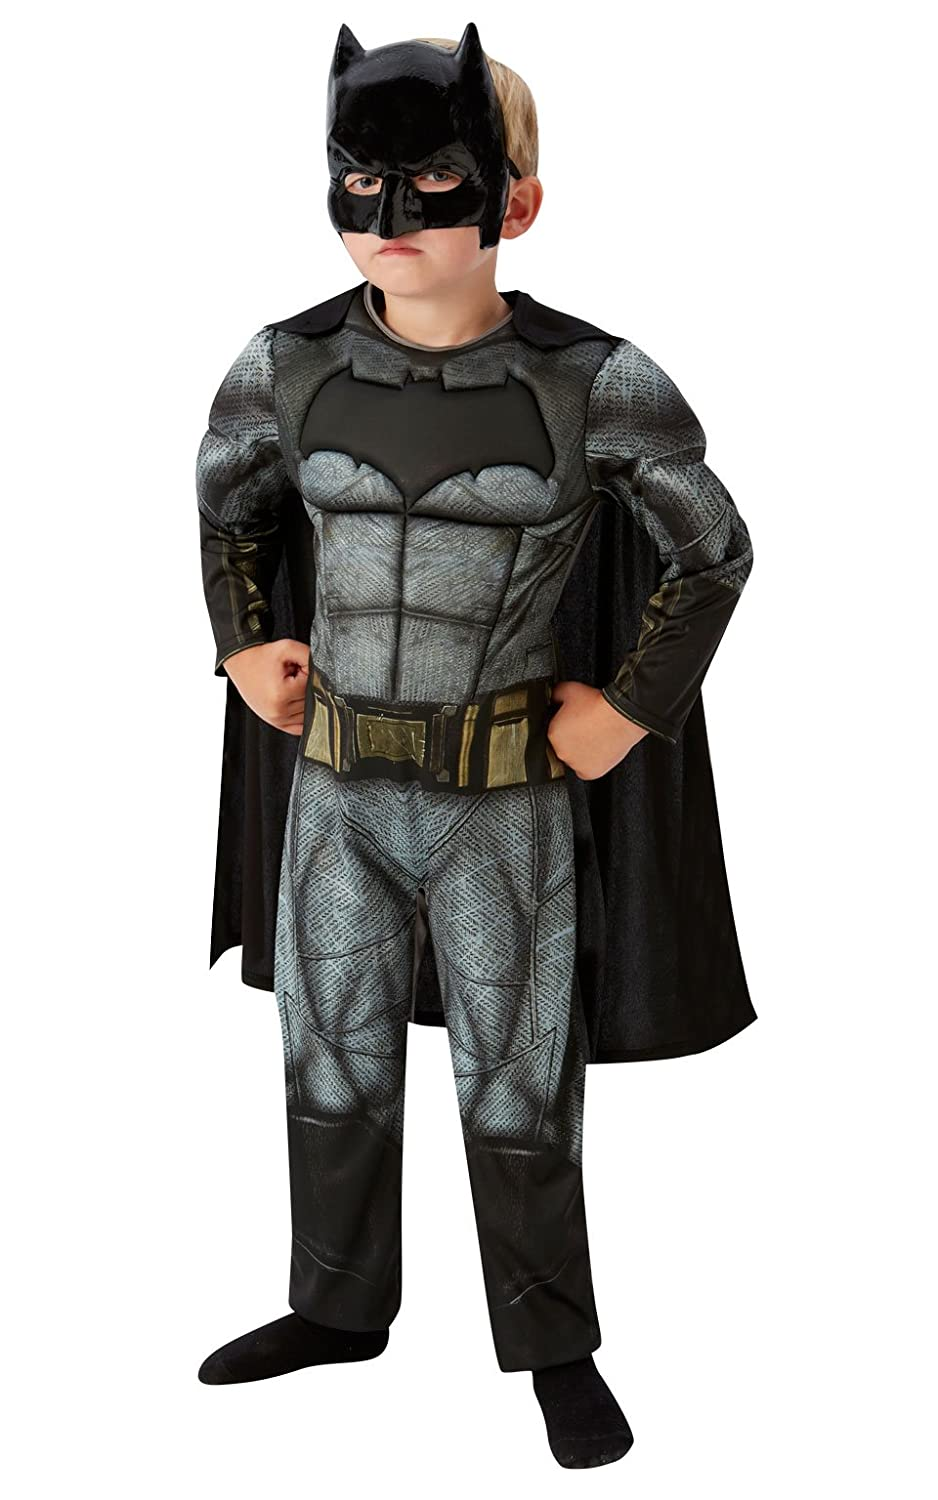 Rubieu0027s Official DC Comics Warner Bros Dawn of Justice Deluxe Batman Fancy Dress Costume - Small Rubies Amazon.co.uk Toys u0026 Games  sc 1 st  Amazon UK & Rubieu0027s Official DC Comics Warner Bros Dawn of Justice Deluxe Batman ...